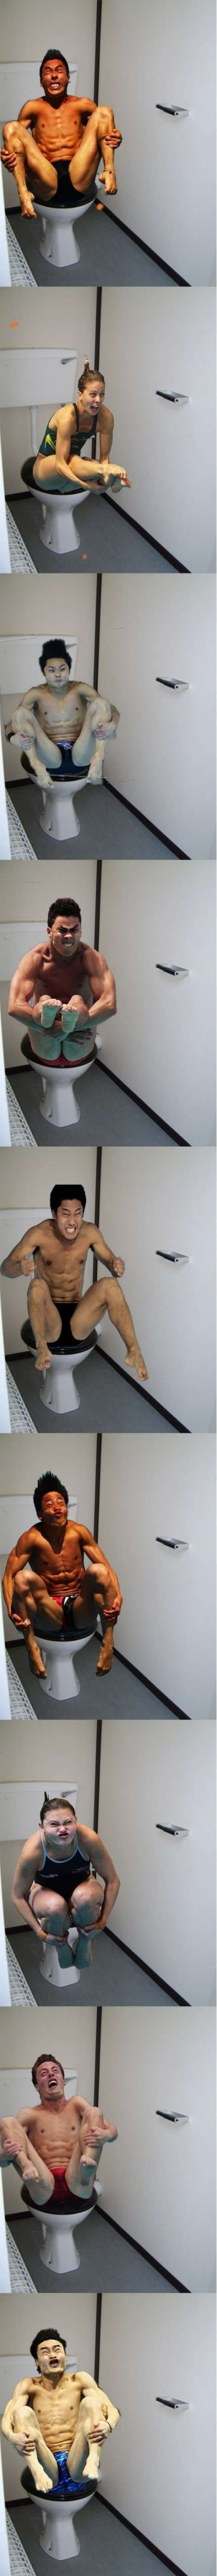 Olympic Toilet Diving